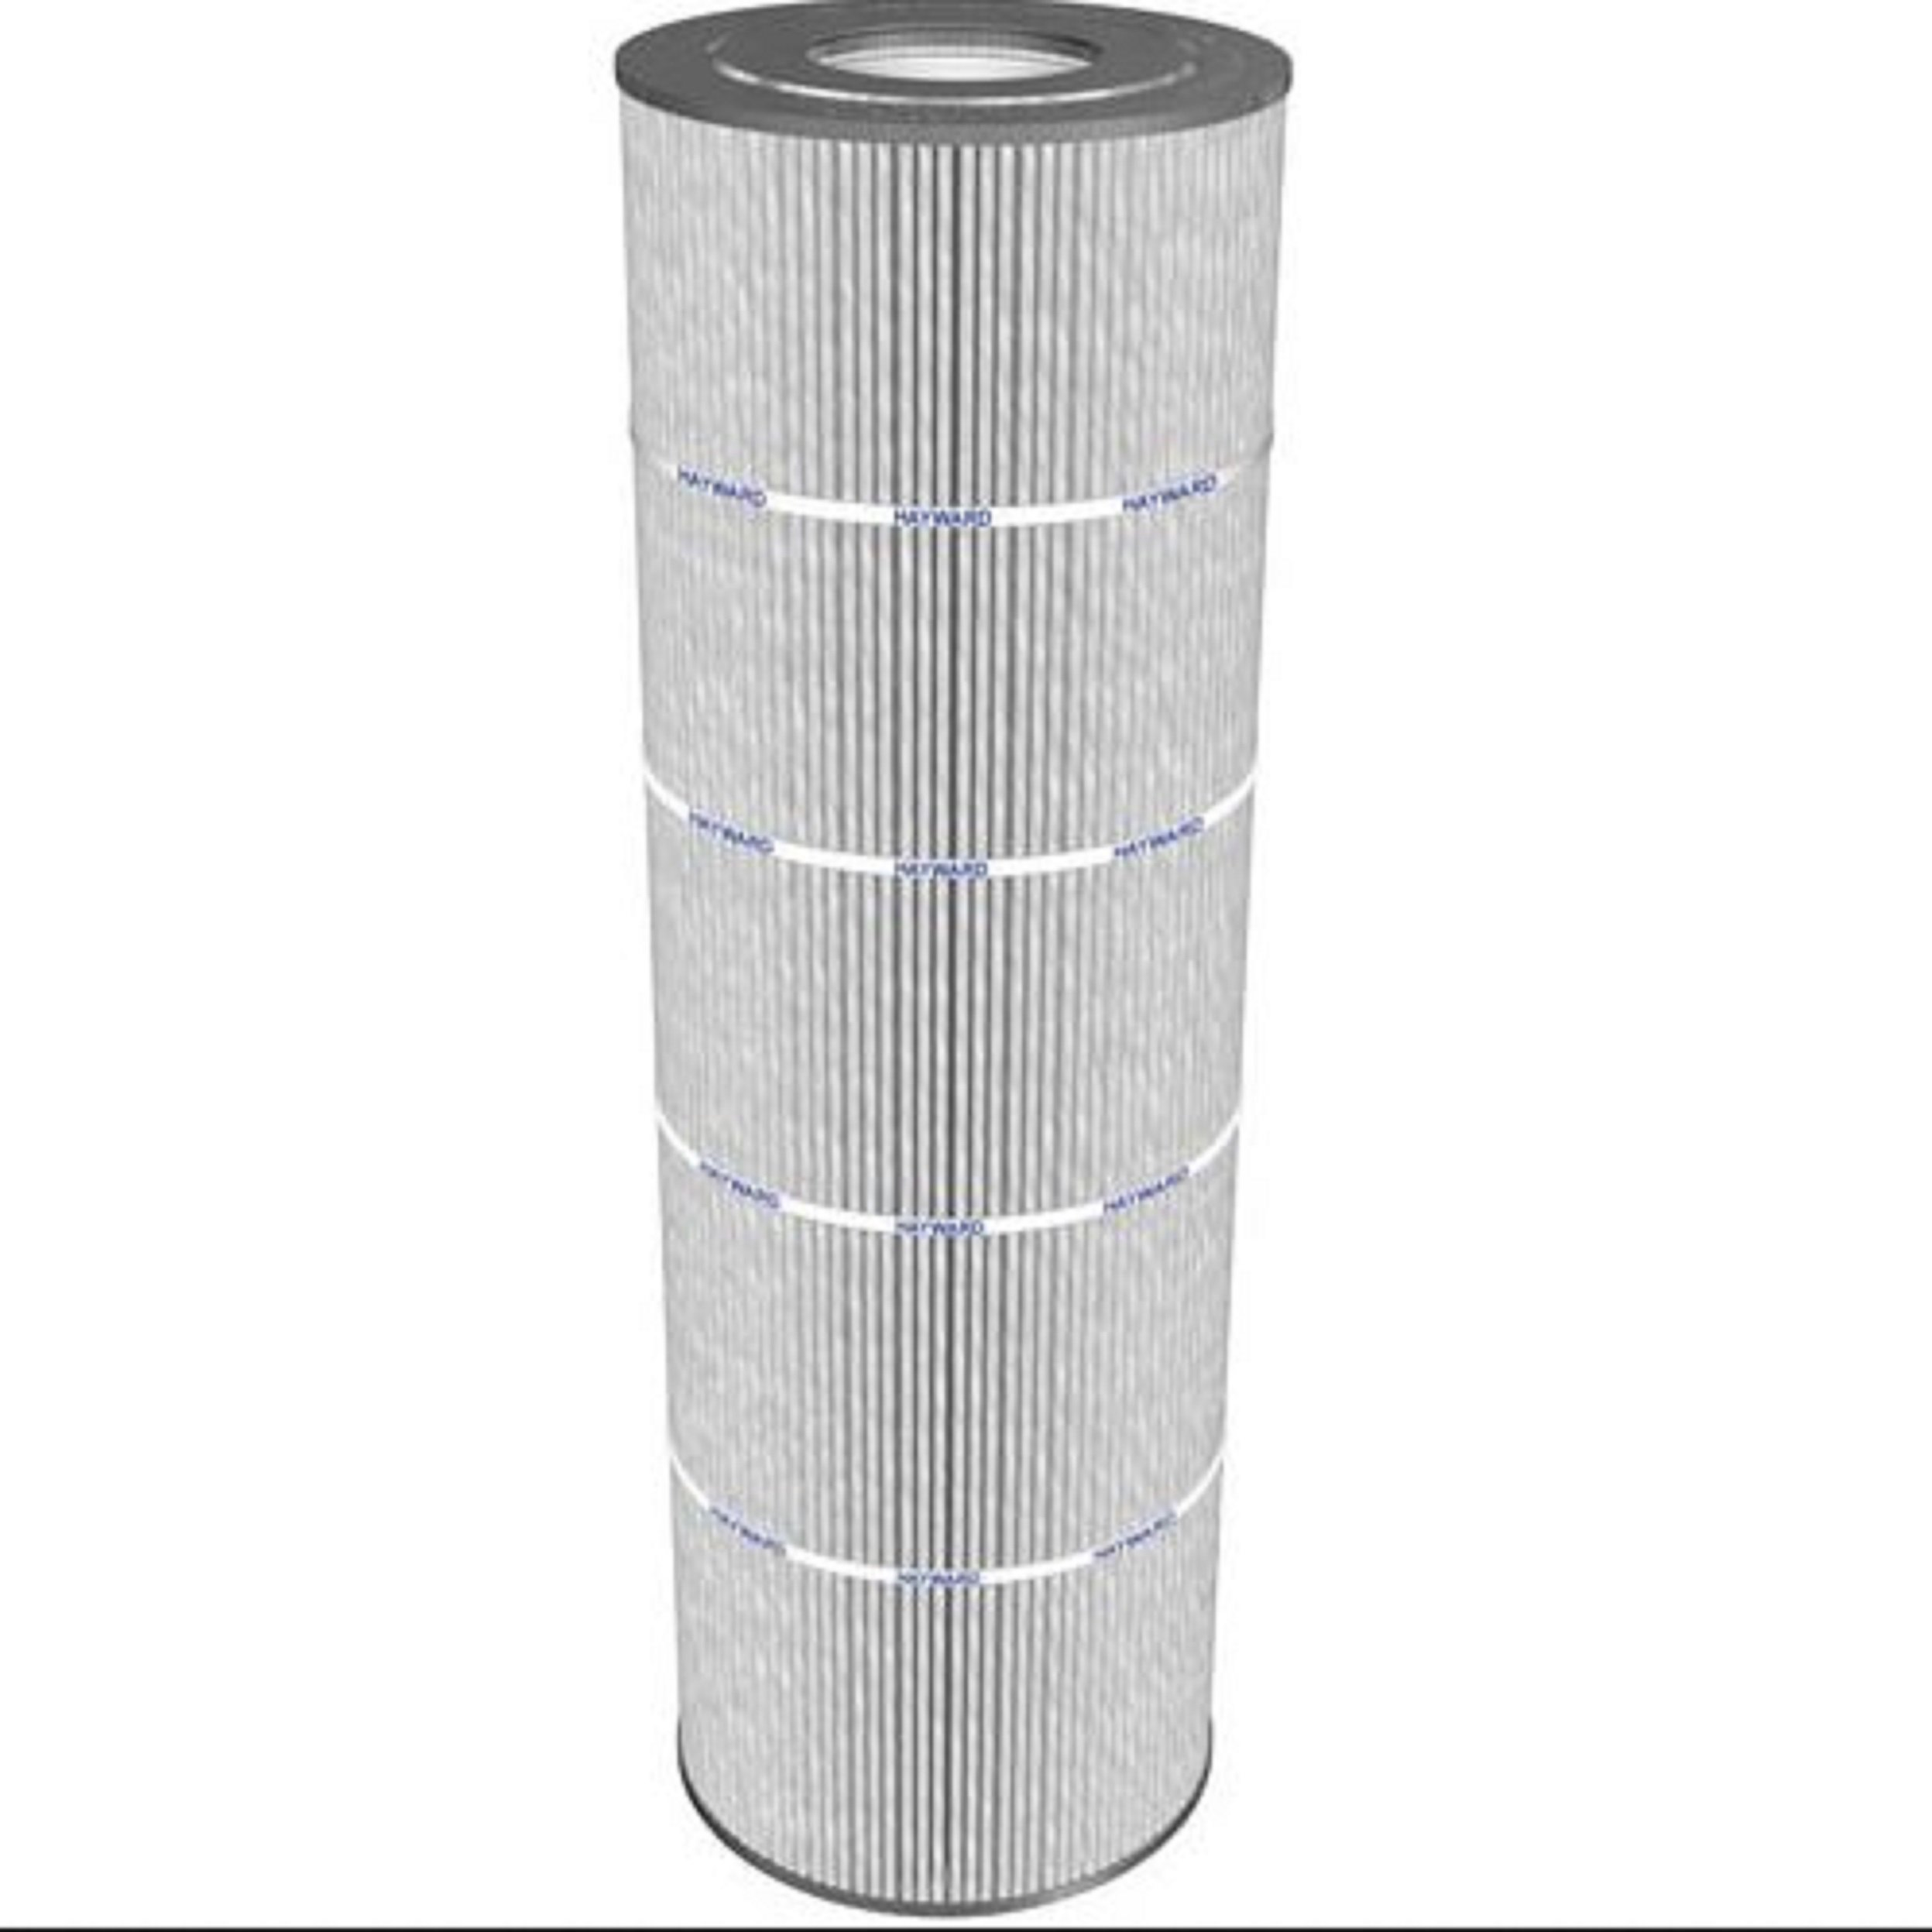 Hayward CCX1500RE (CC 1500 E) Replacement Pool Filter Cartridge Elements, 150-Square-Foot by Hayward